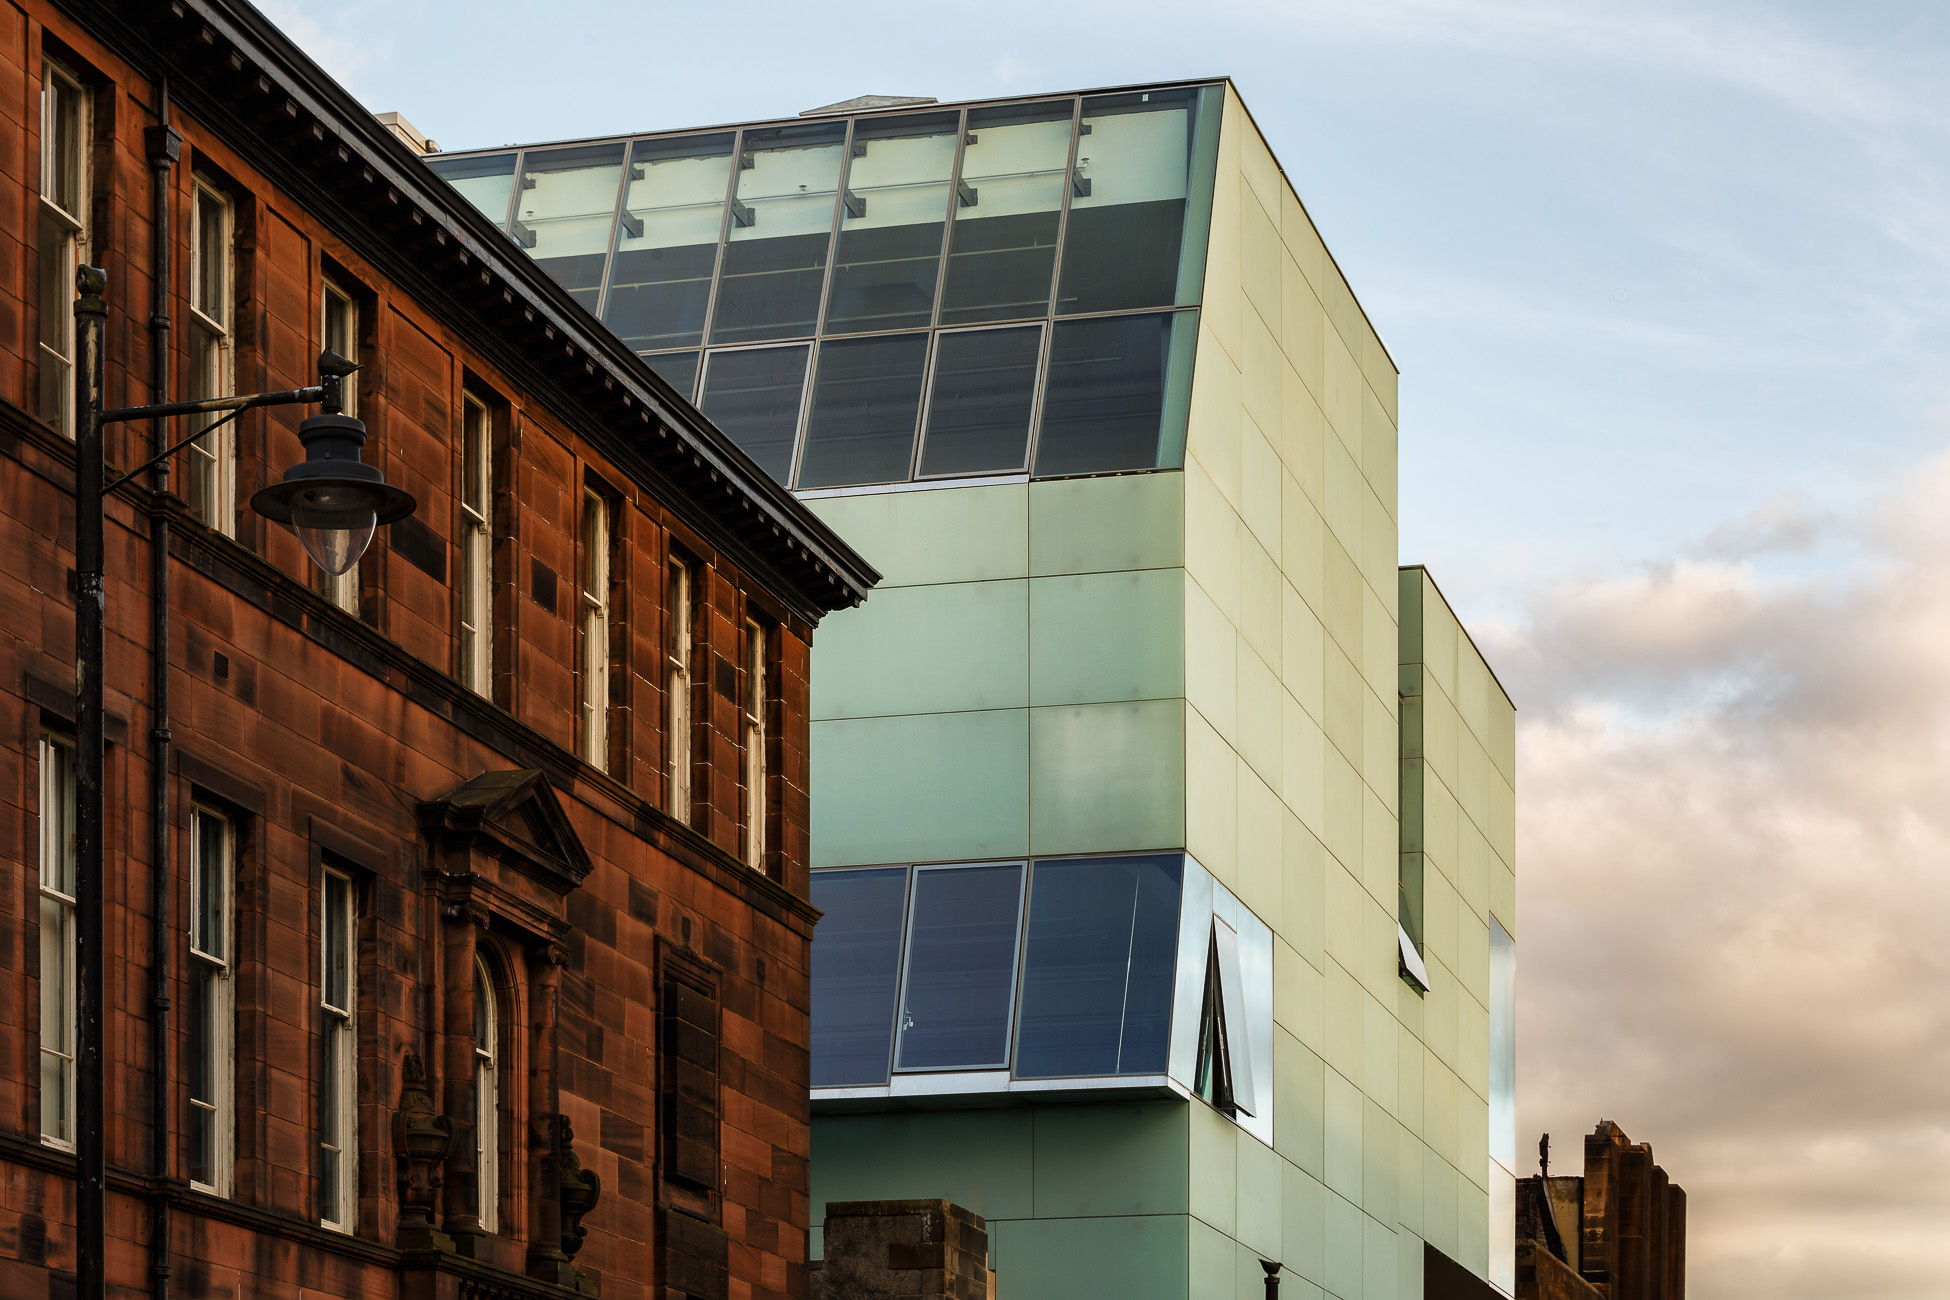 doublespace_architecture_steven_holl_glasgow_reid_school_of_arts-0060